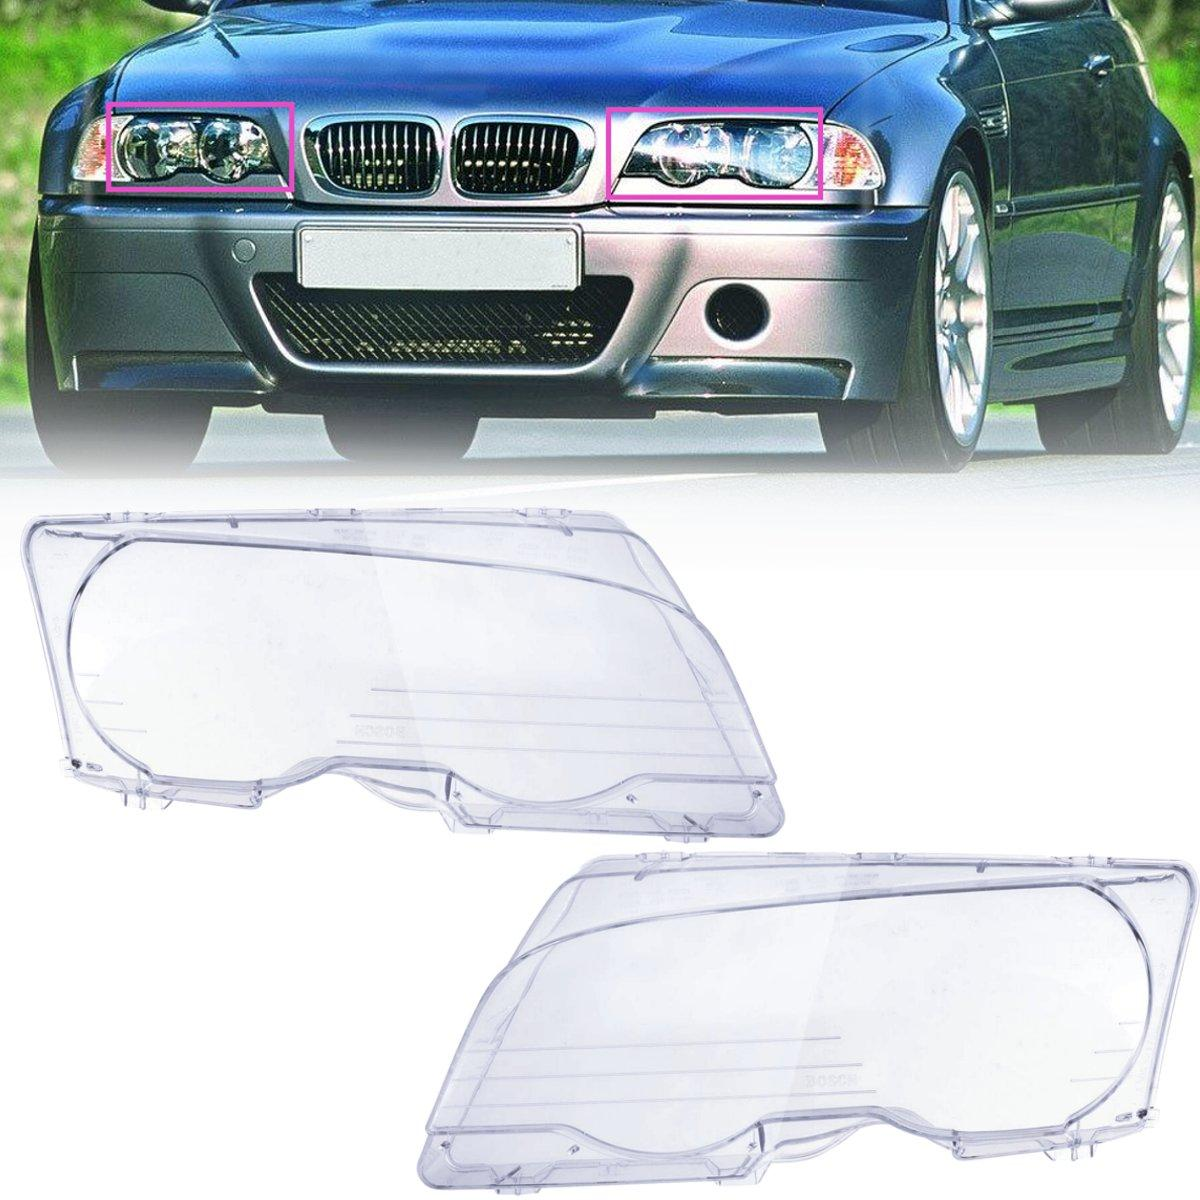 L R Headlight Cover Headlamps For Bmw M3 E46 Coupe Convertible 2dr 2001 2005 Buy Online At Best Prices In Bangladesh Daraz Com Bd